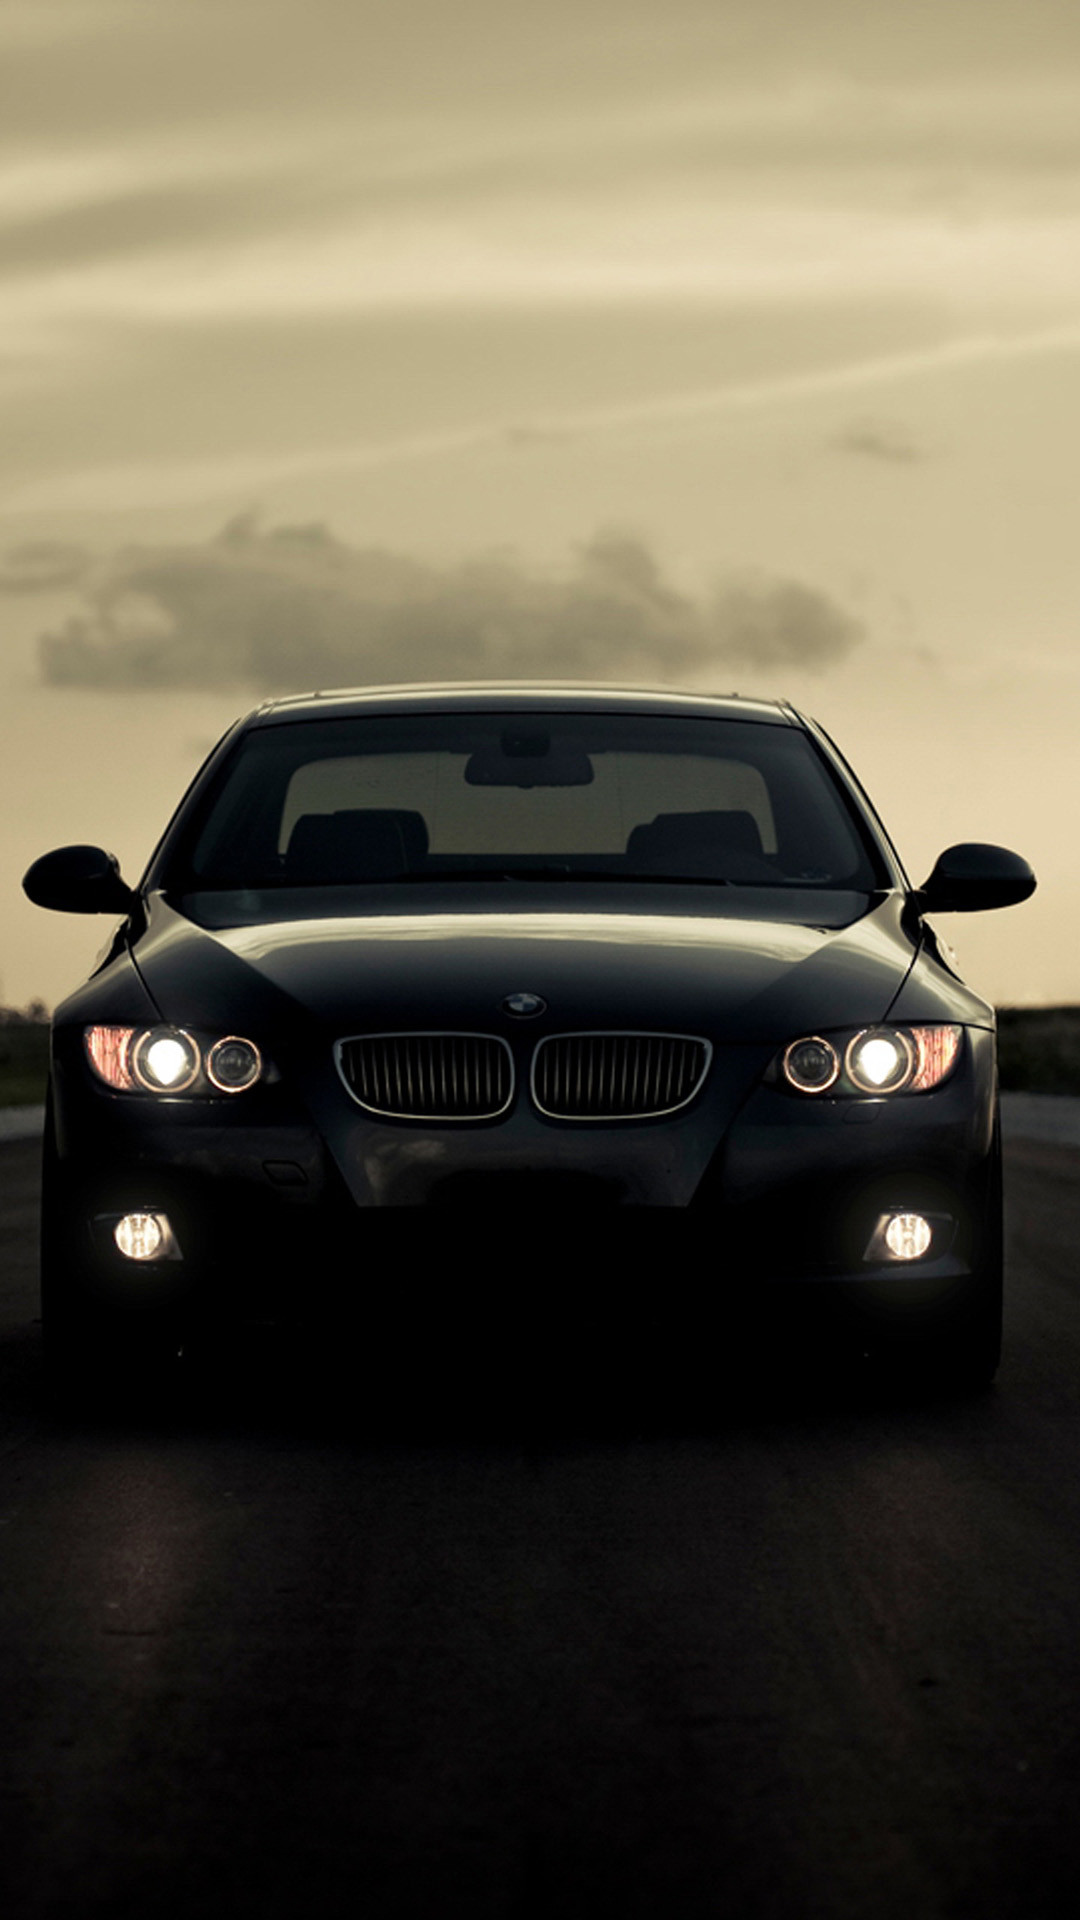 Galaxy S8 Wallpaper Hd Bmw Logo Wallpapers 65 Images